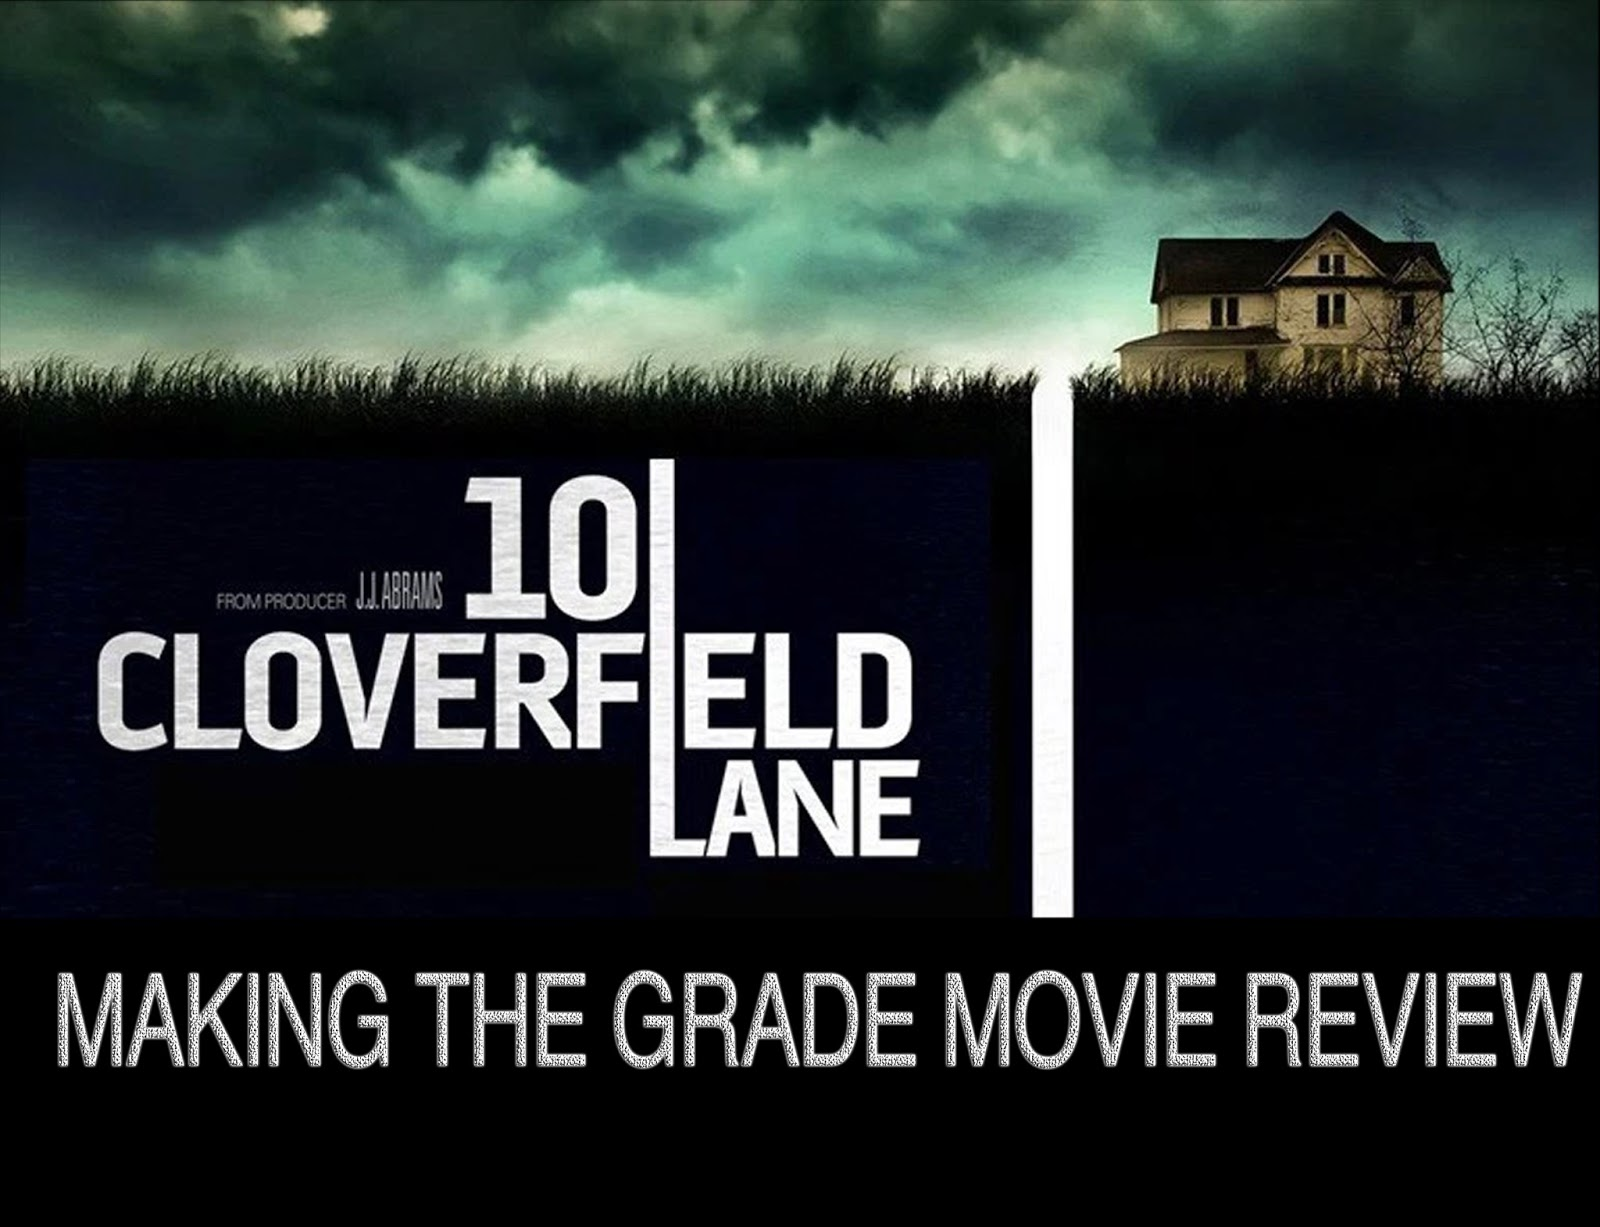 HD 10 Cloverfield Lane photos screen shots poster